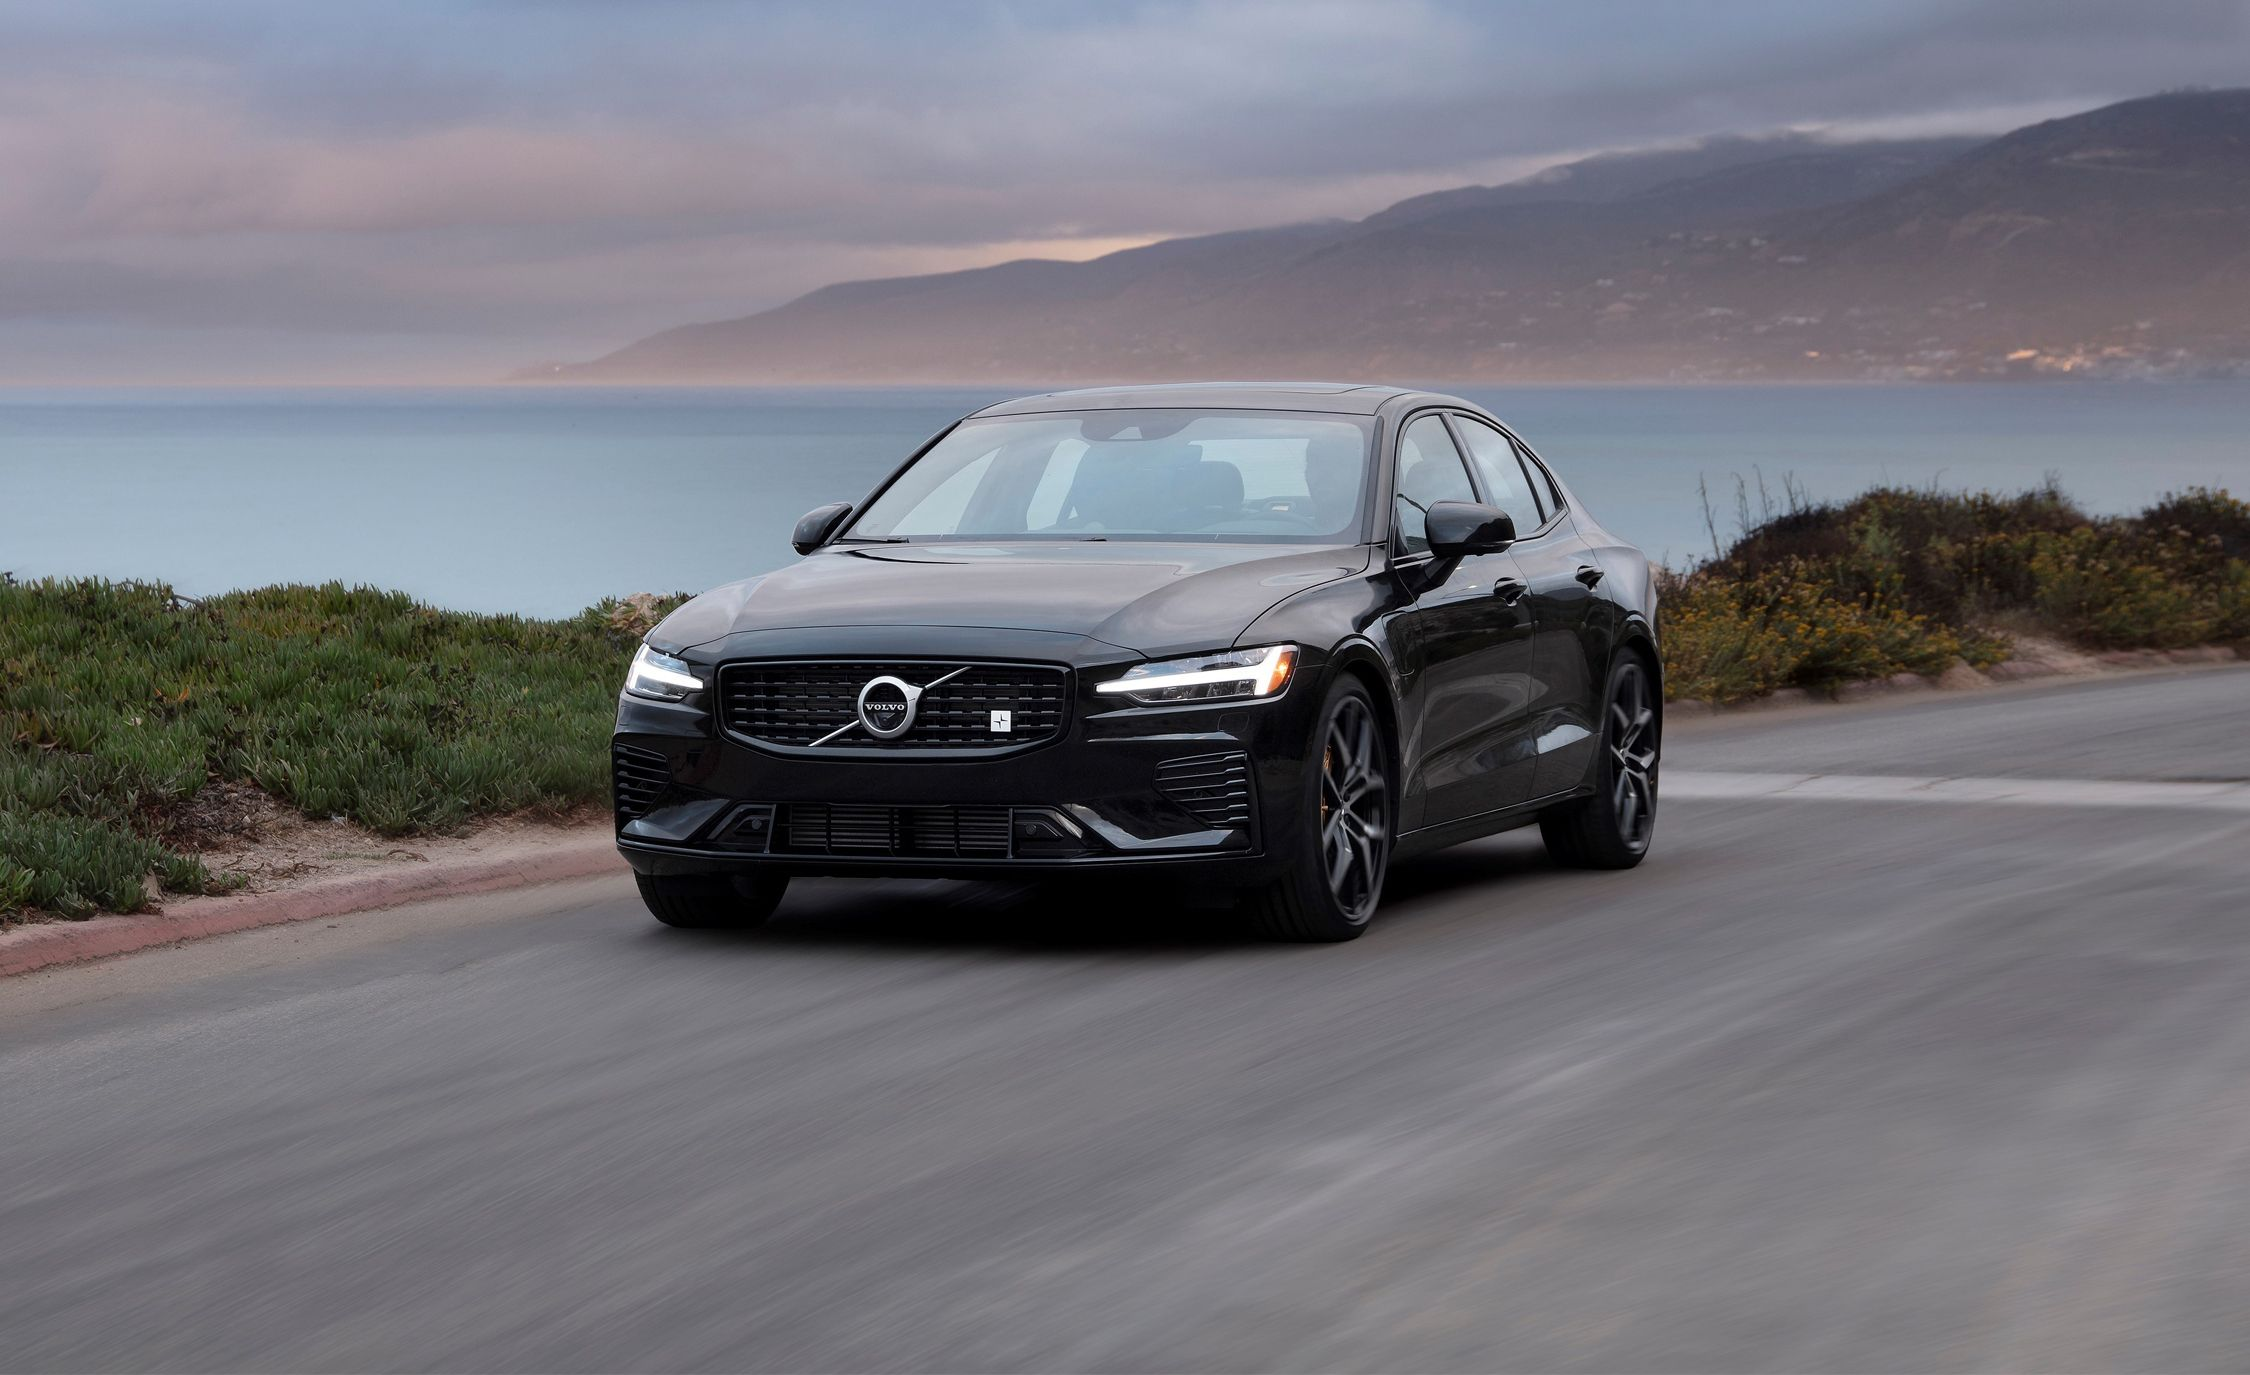 2019 Volvo S60 A Smaller Volvo Sedan But Not A Lesser Volvo